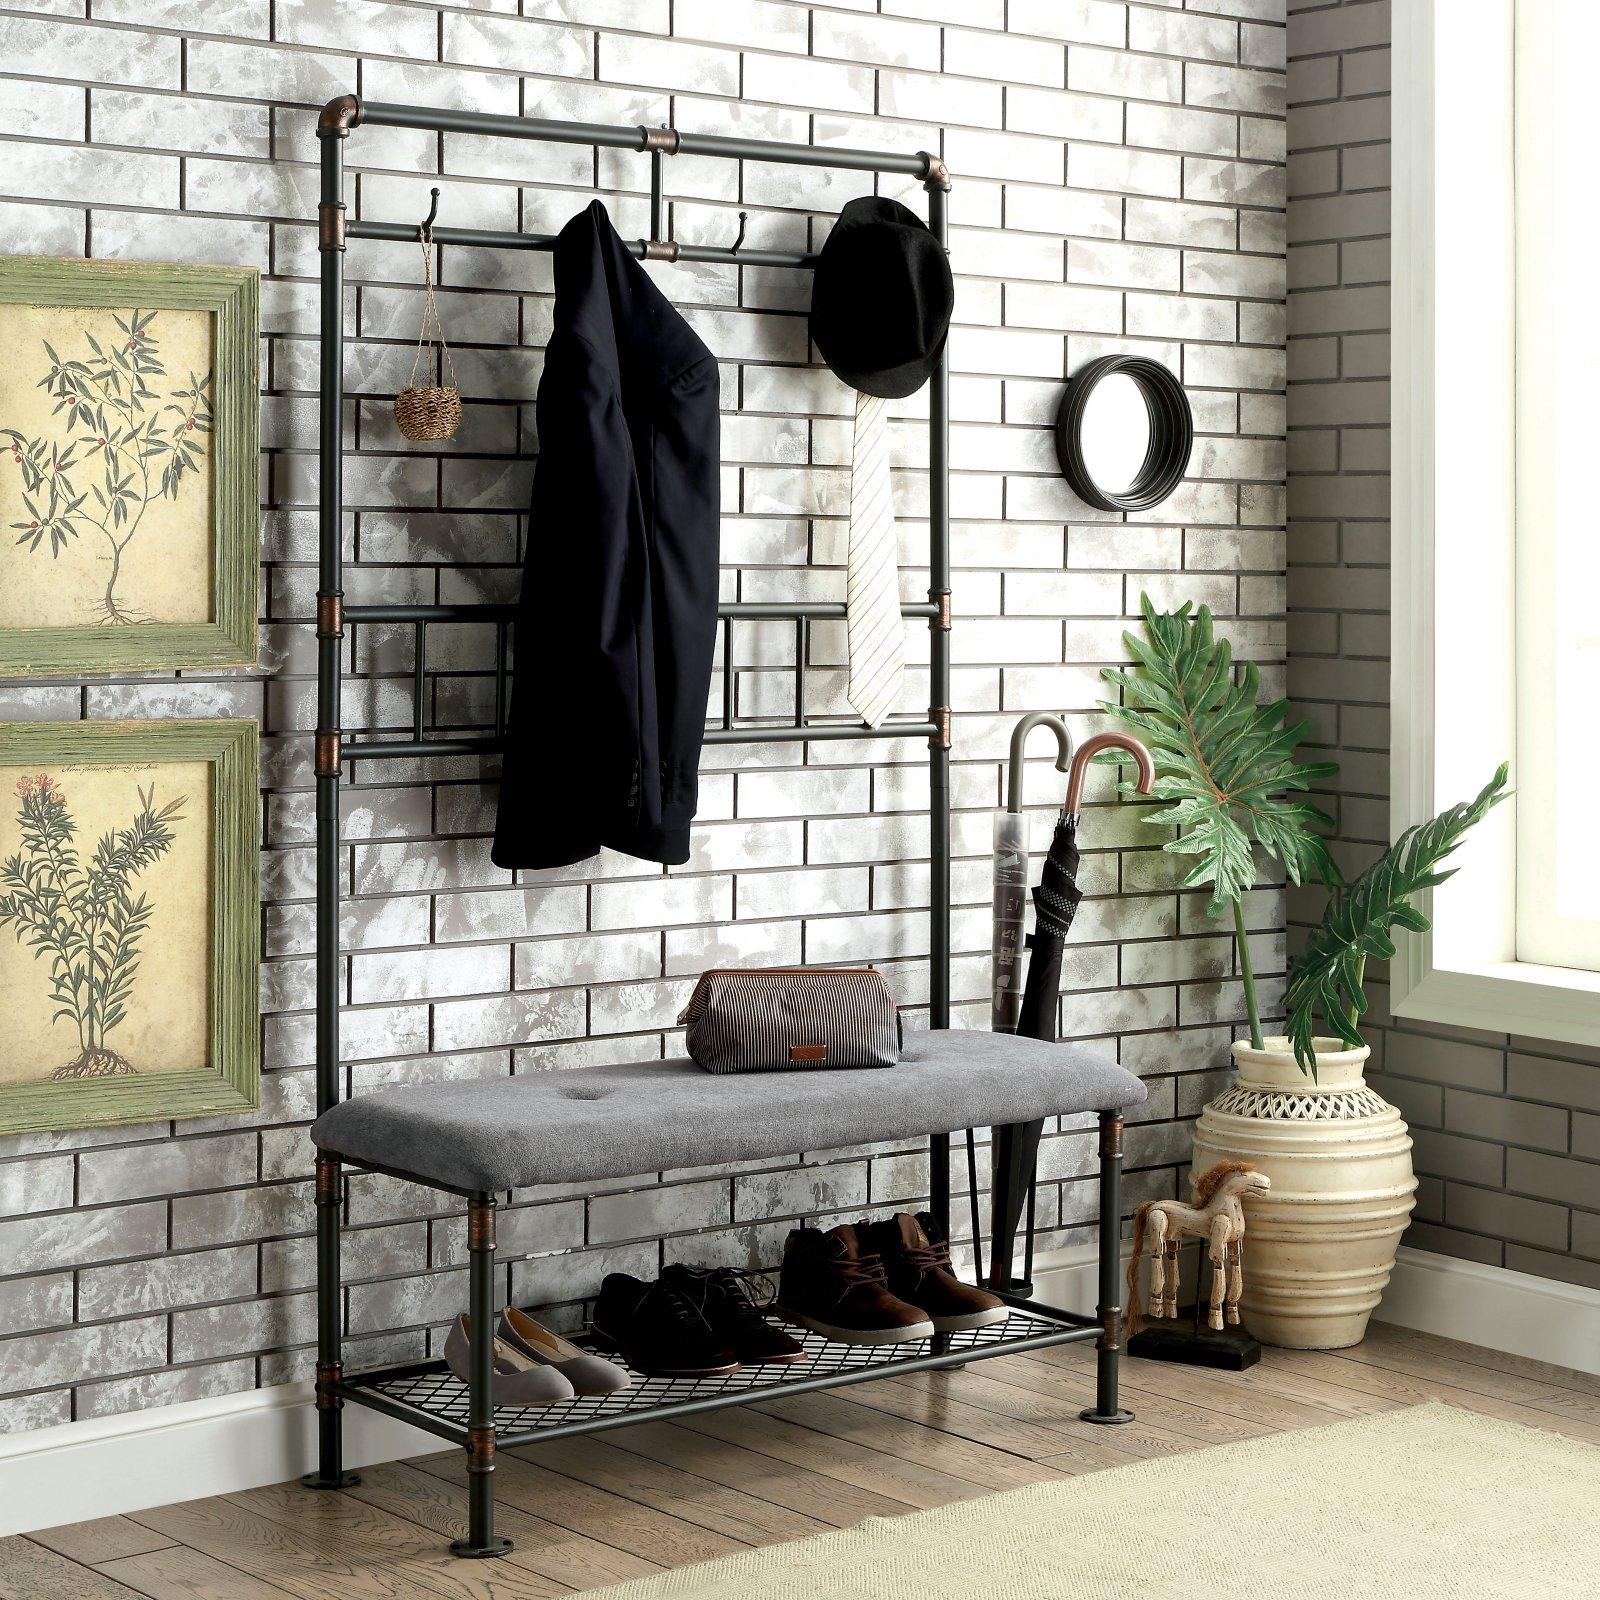 Furniture of America Akayla Industrial Style Large Coat Rack Bench